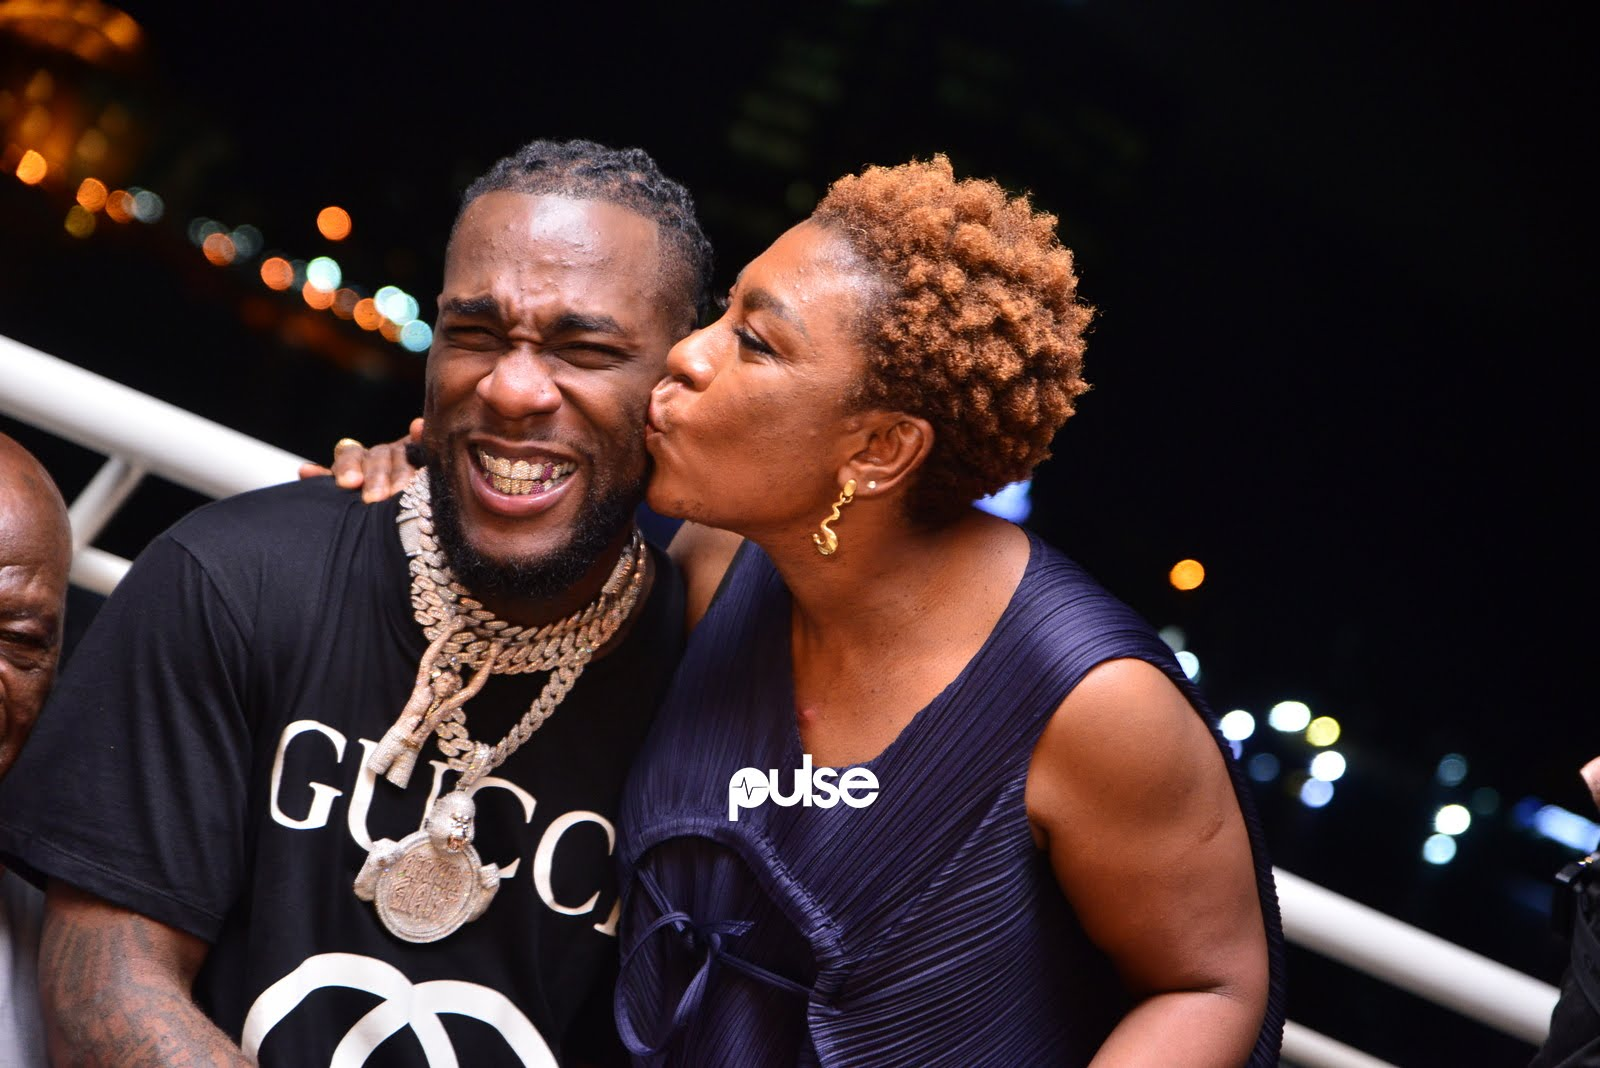 Burna Boy hosts listening party for African Giant in Lagos. (Pulse Nigeria)